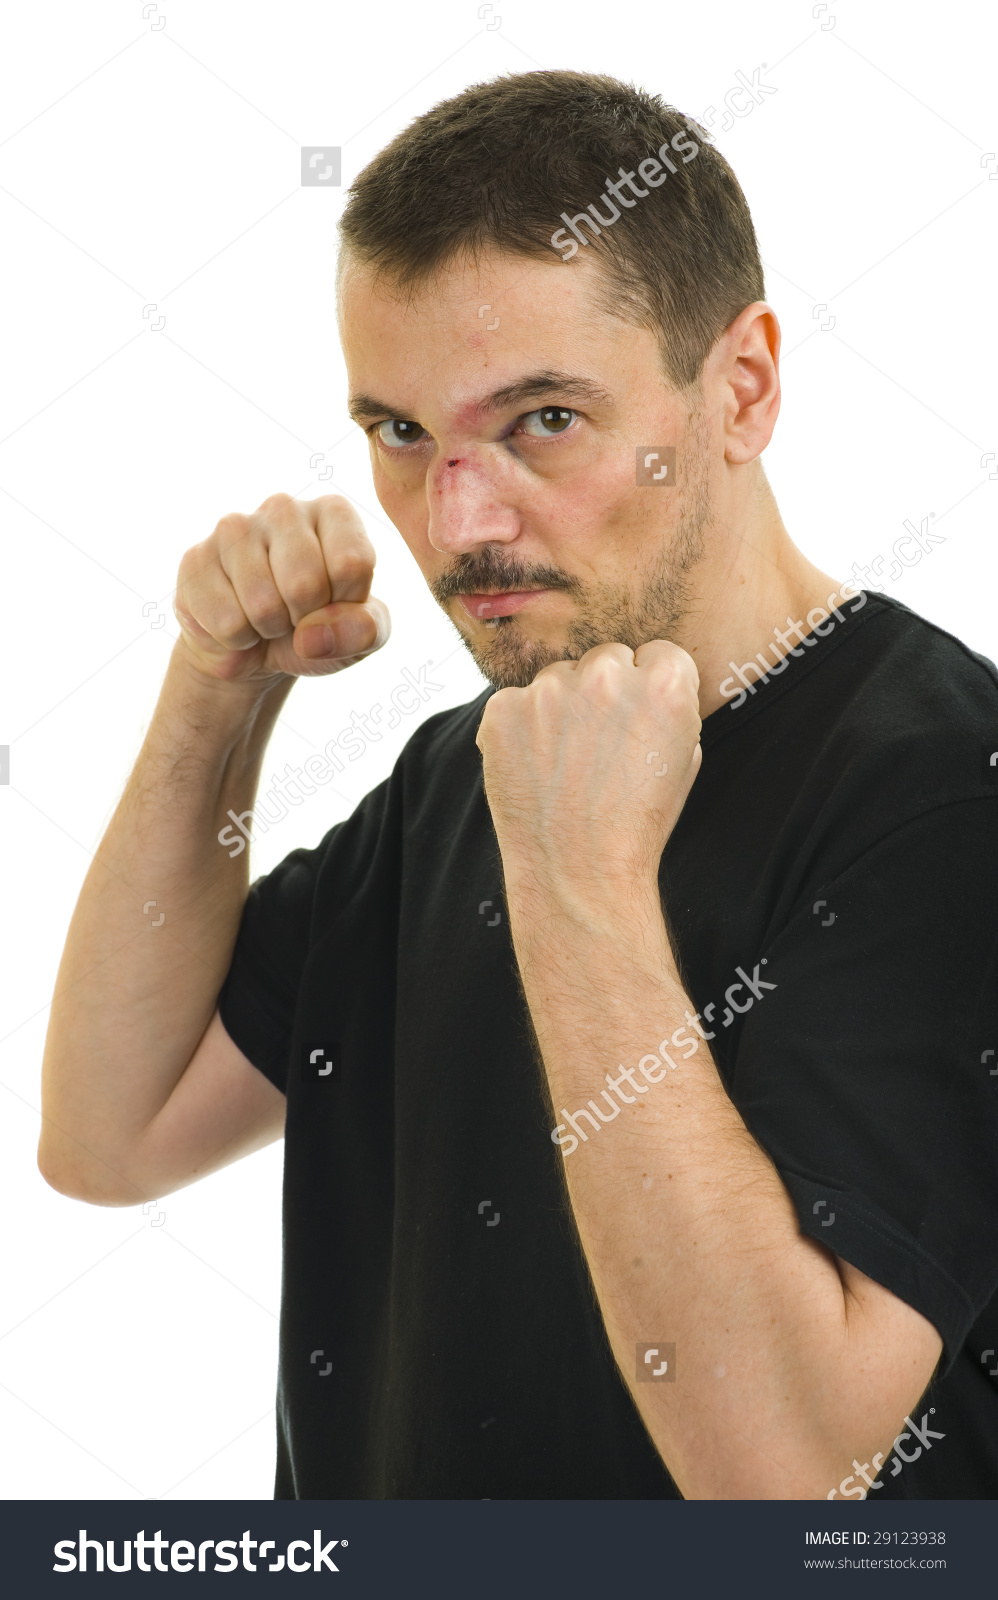 Man With Broken, Crooked Nose And Black Eye Isolated On White.